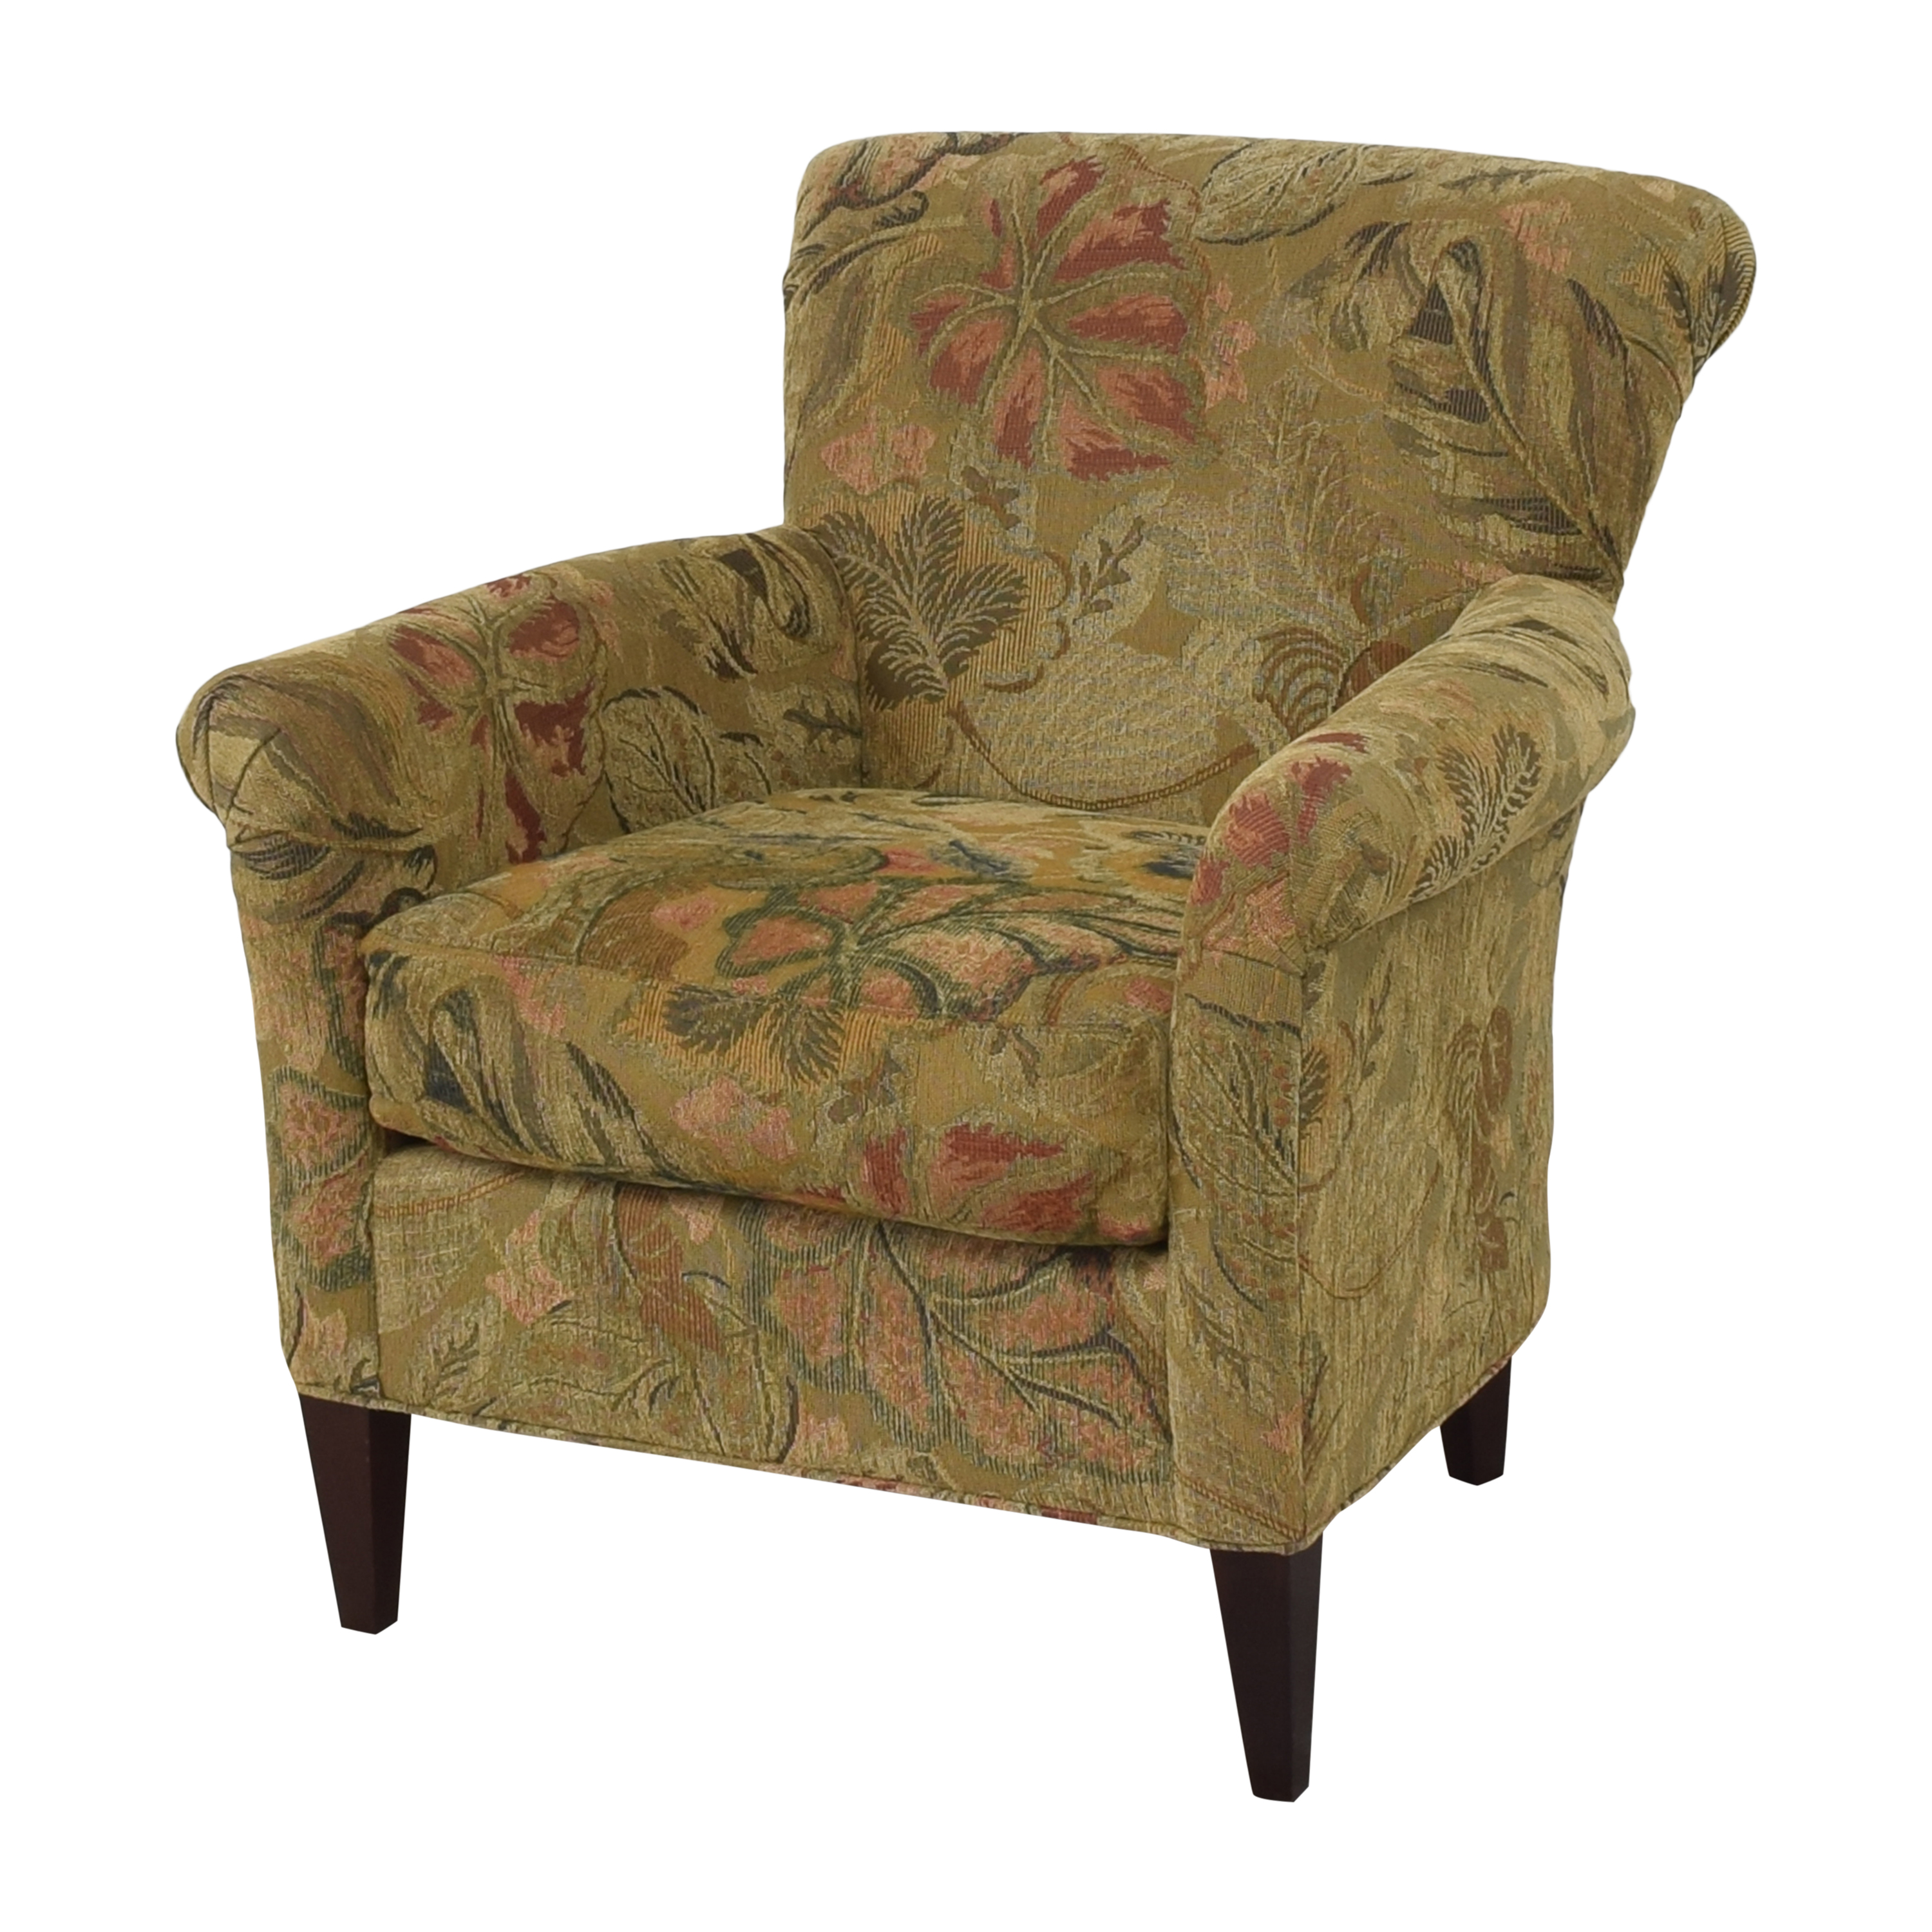 Crate & Barrel Crate & Barrel Accent Chair with Ottoman multi